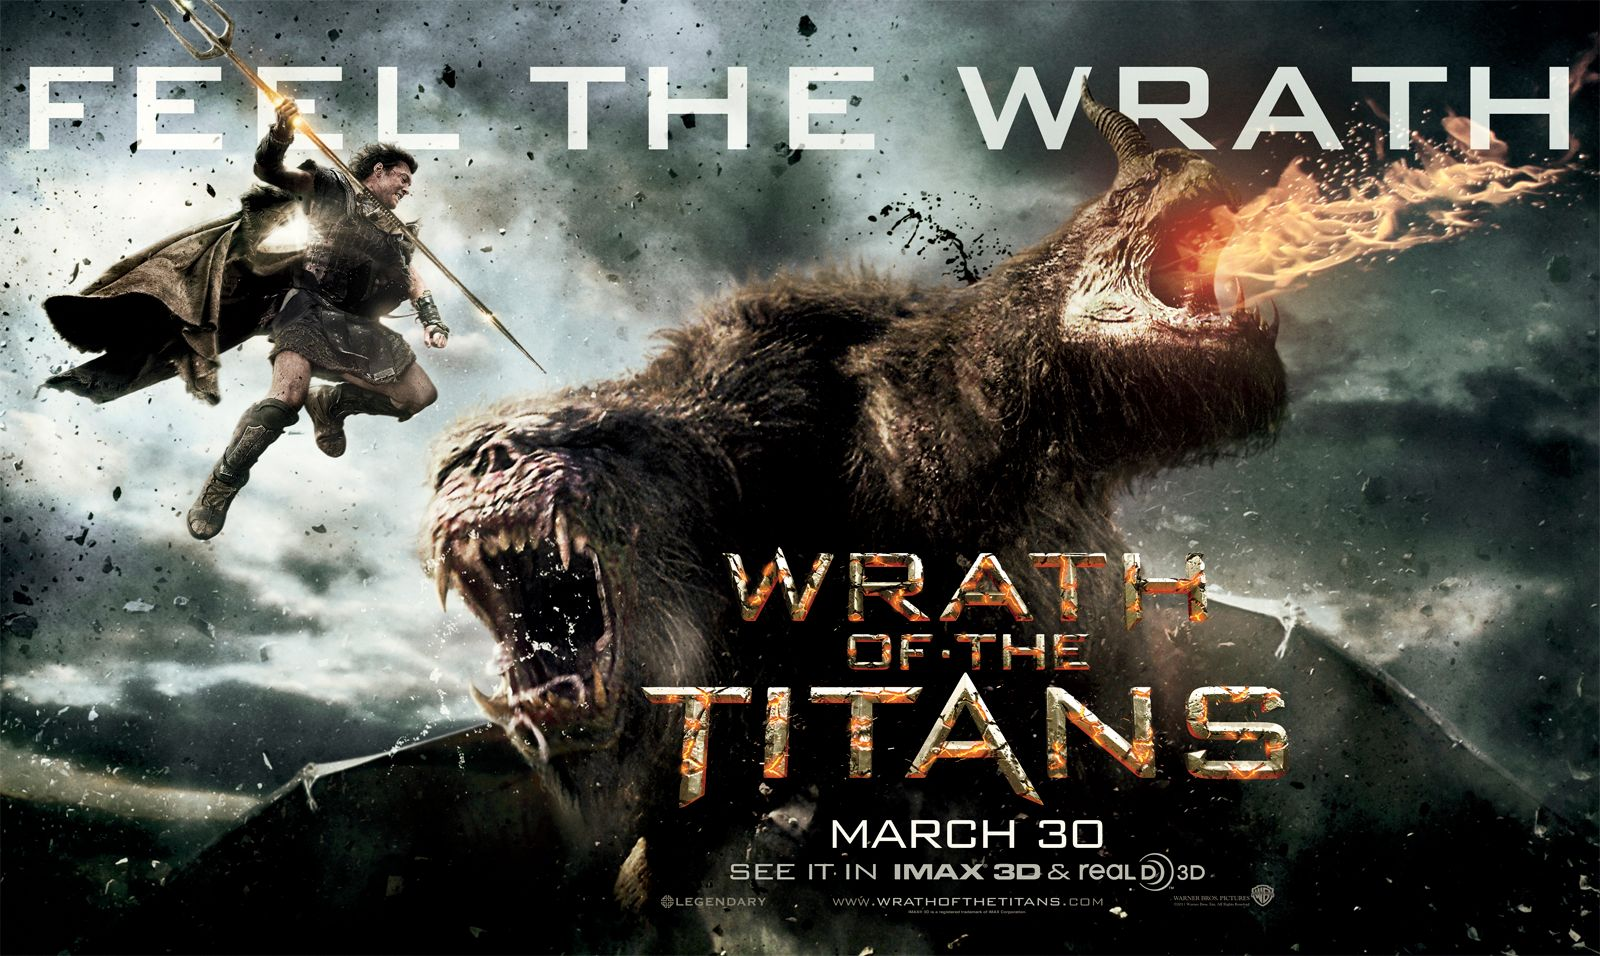 Wrath of the Titans in 3D 2012 Full Length Movie